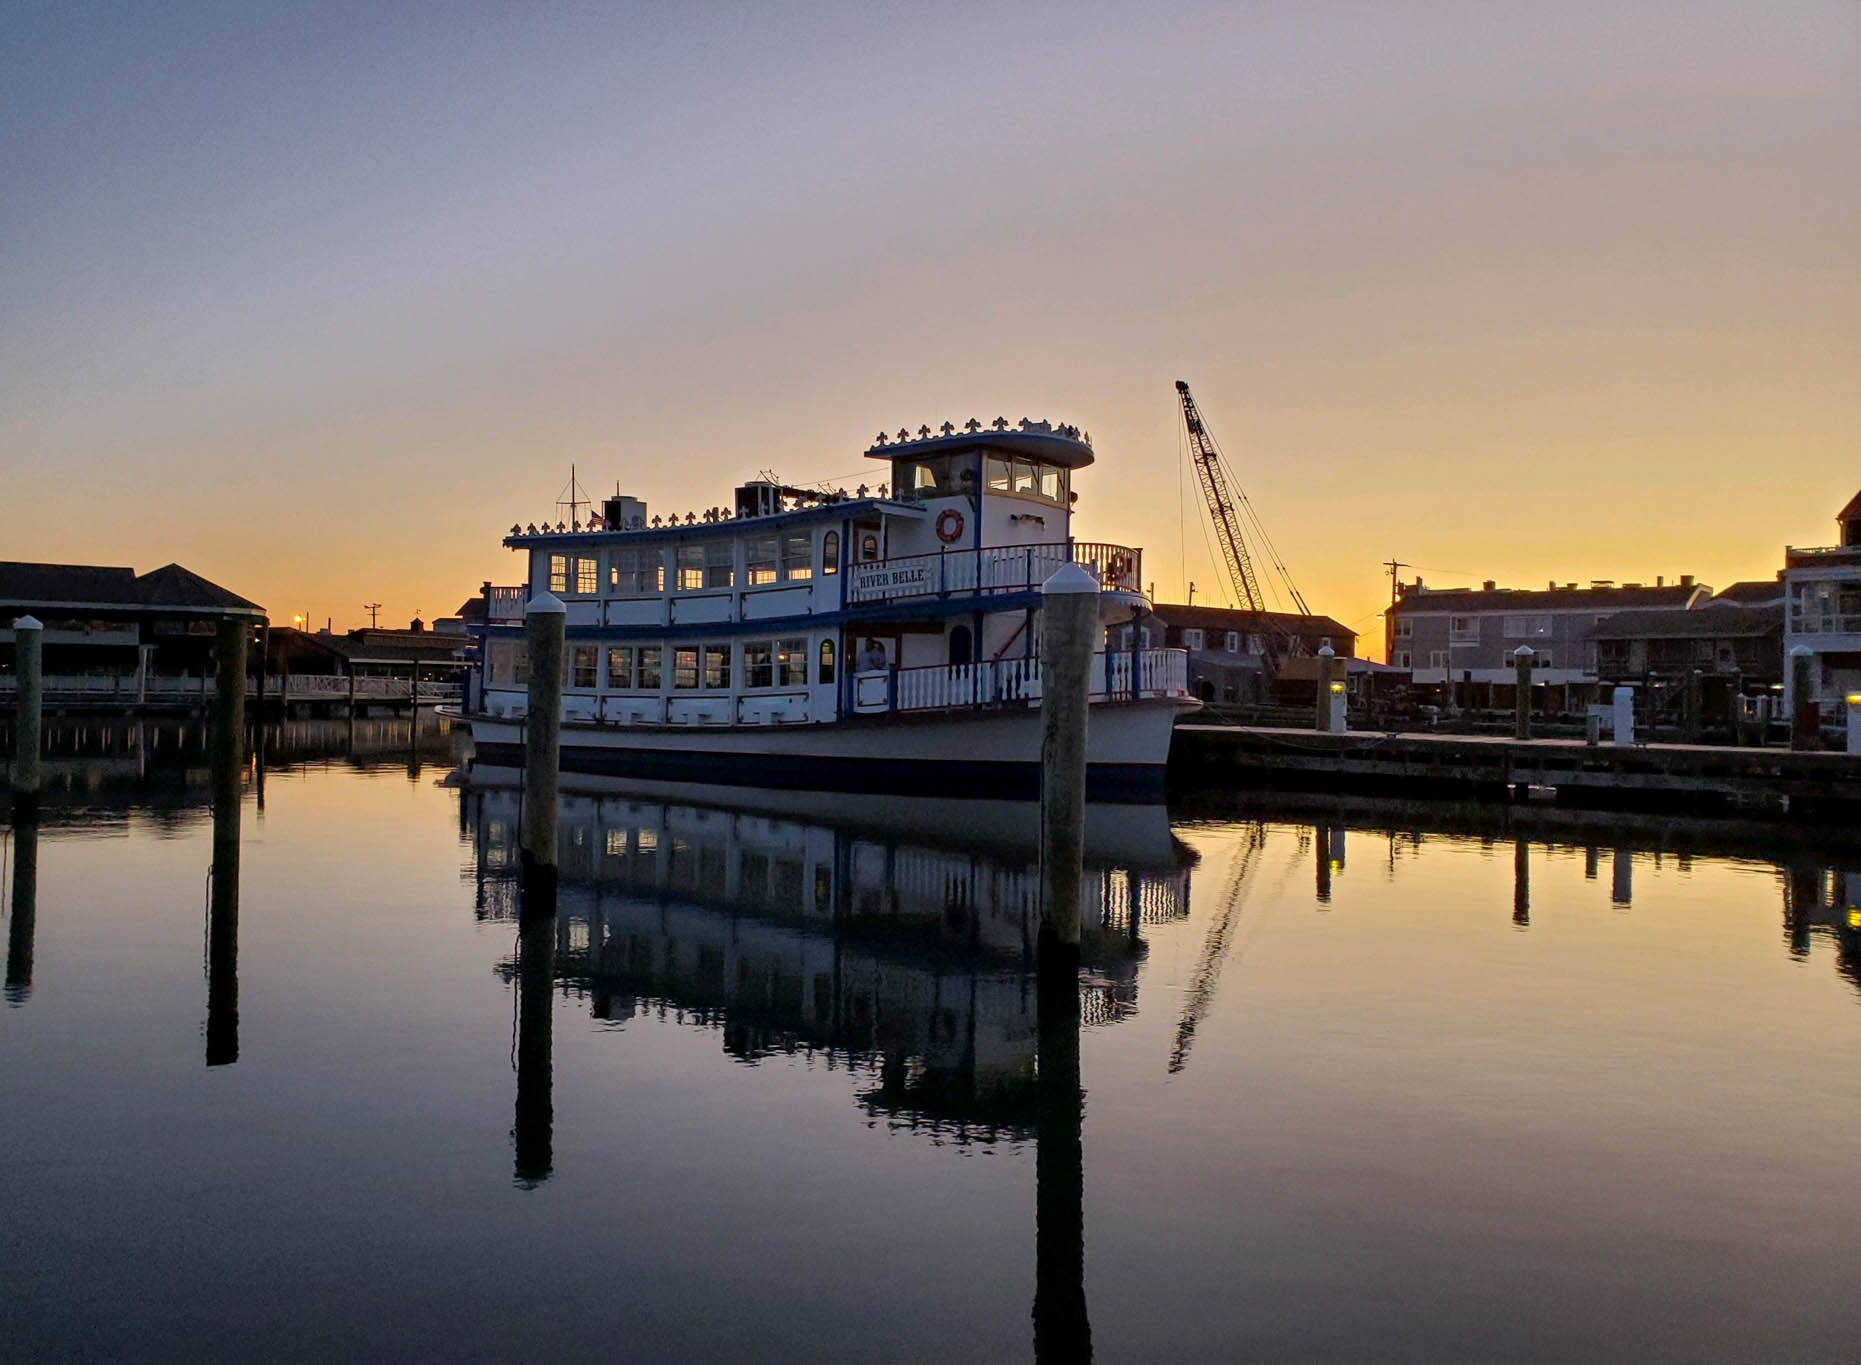 River Belle at the marina